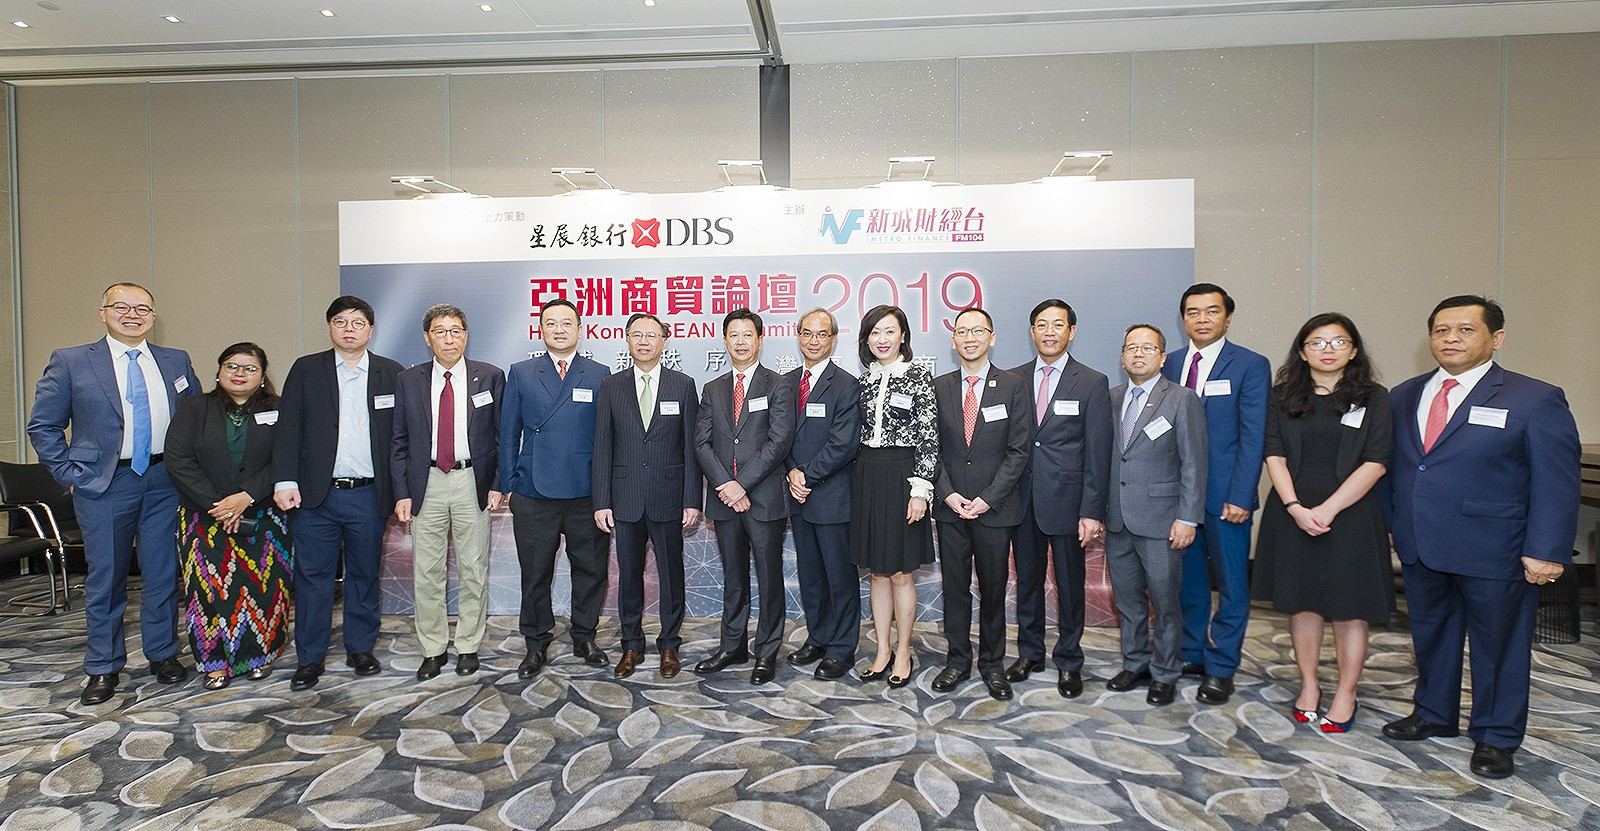 Professor Kuo (4th from left) and other guests of the Summit.